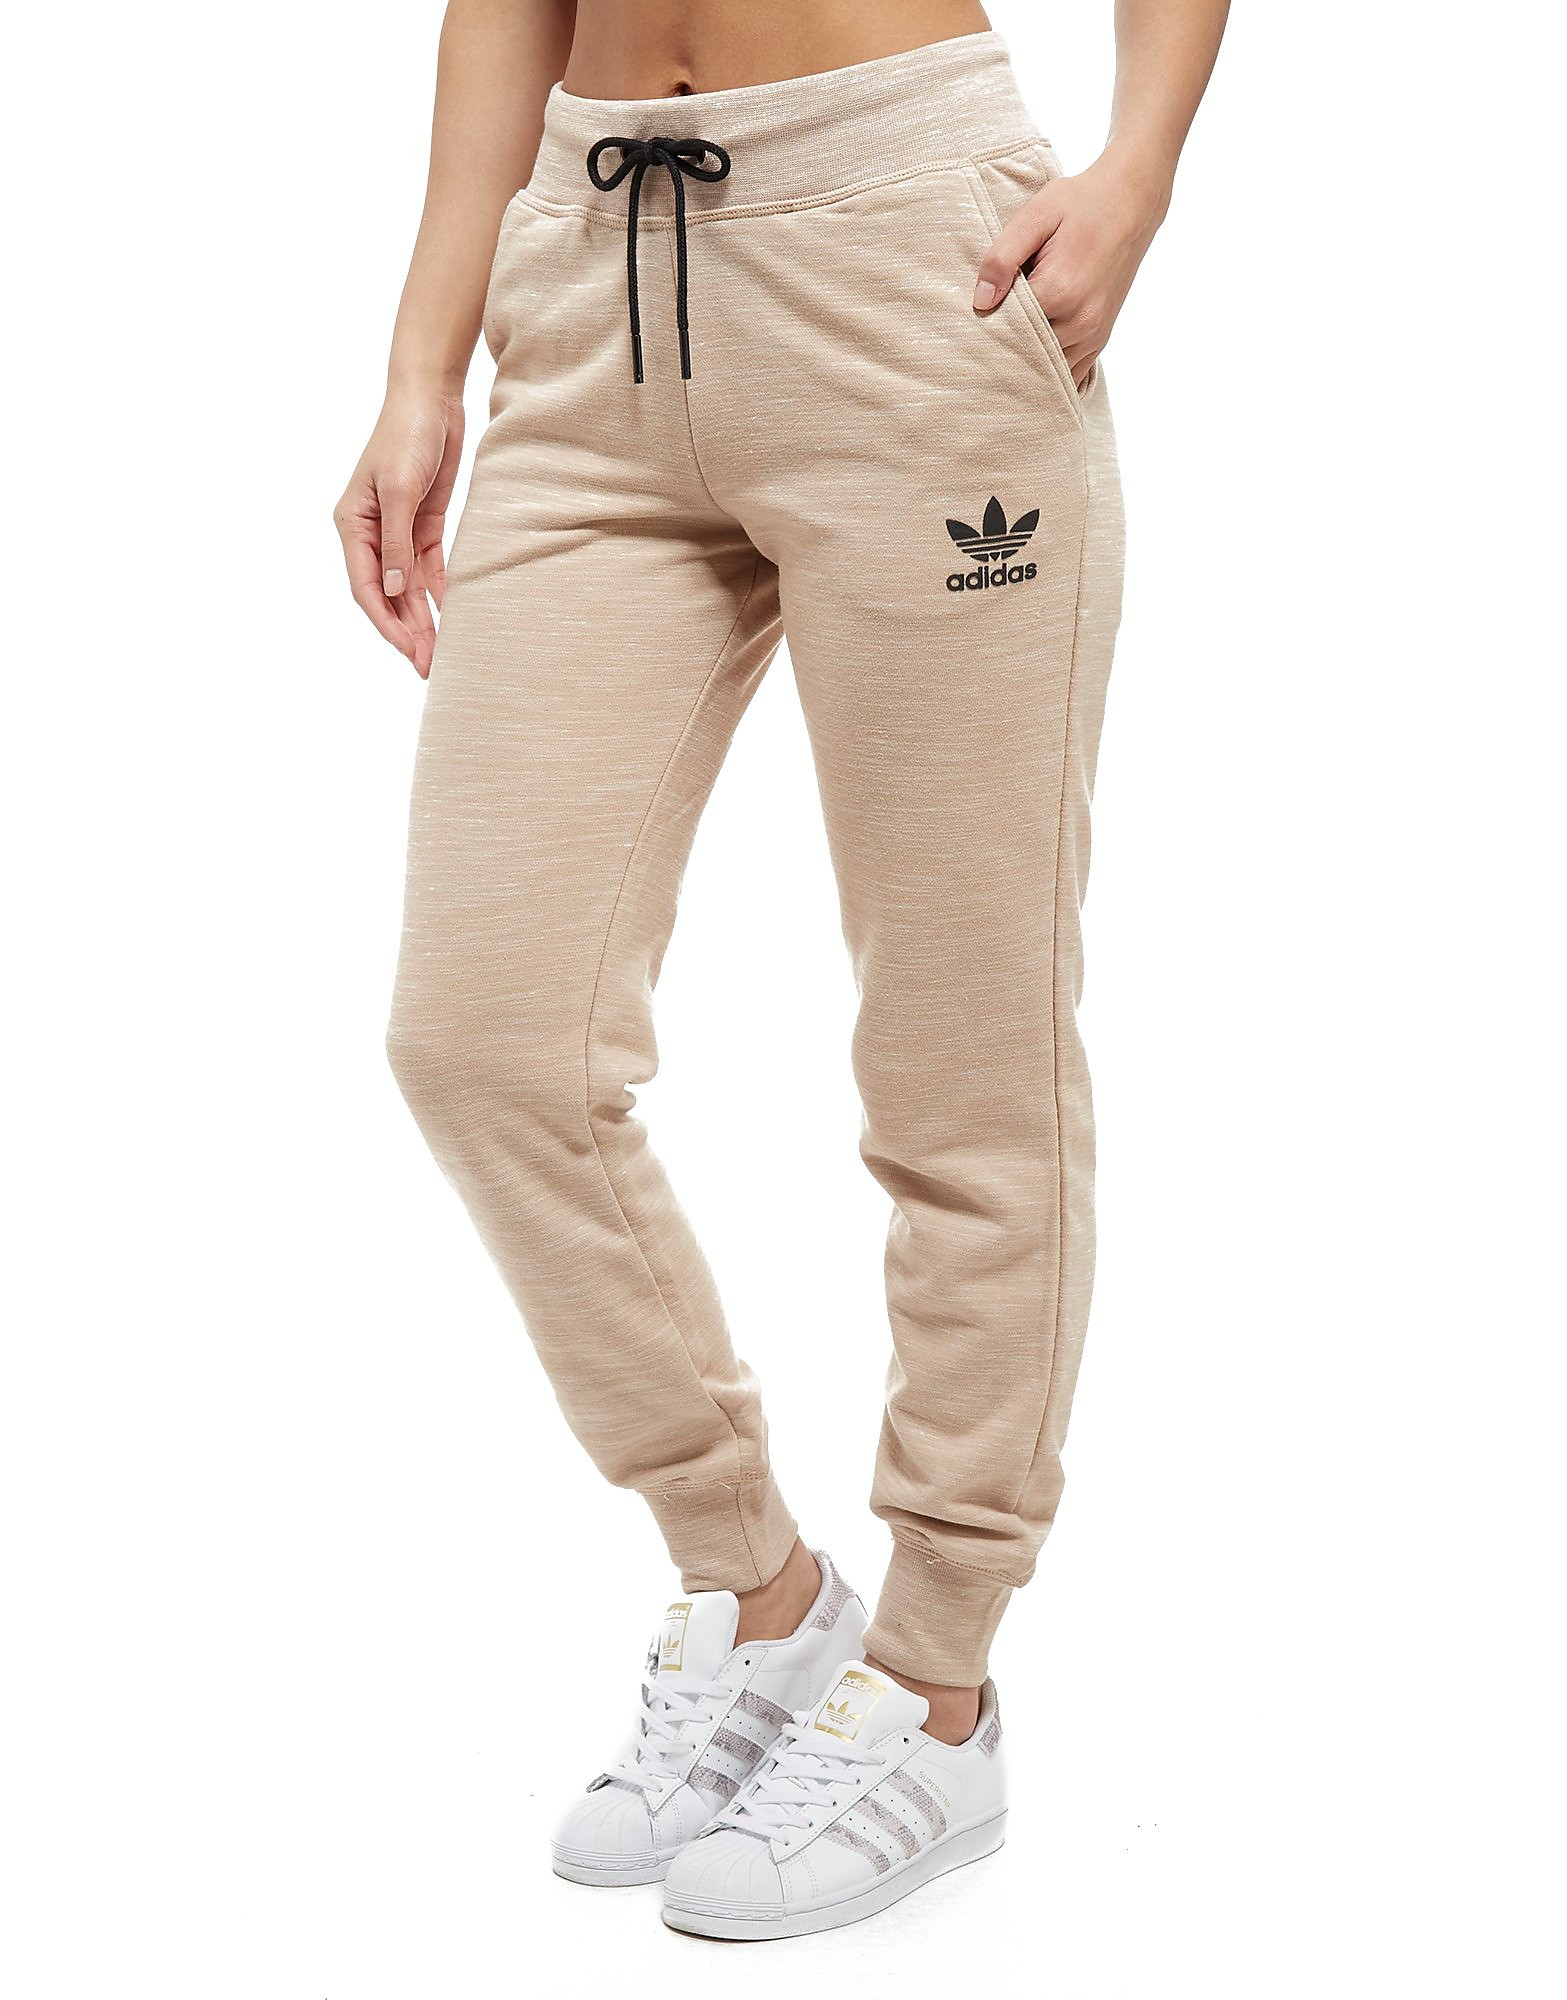 adidas Originals Premium Spacedye Pants